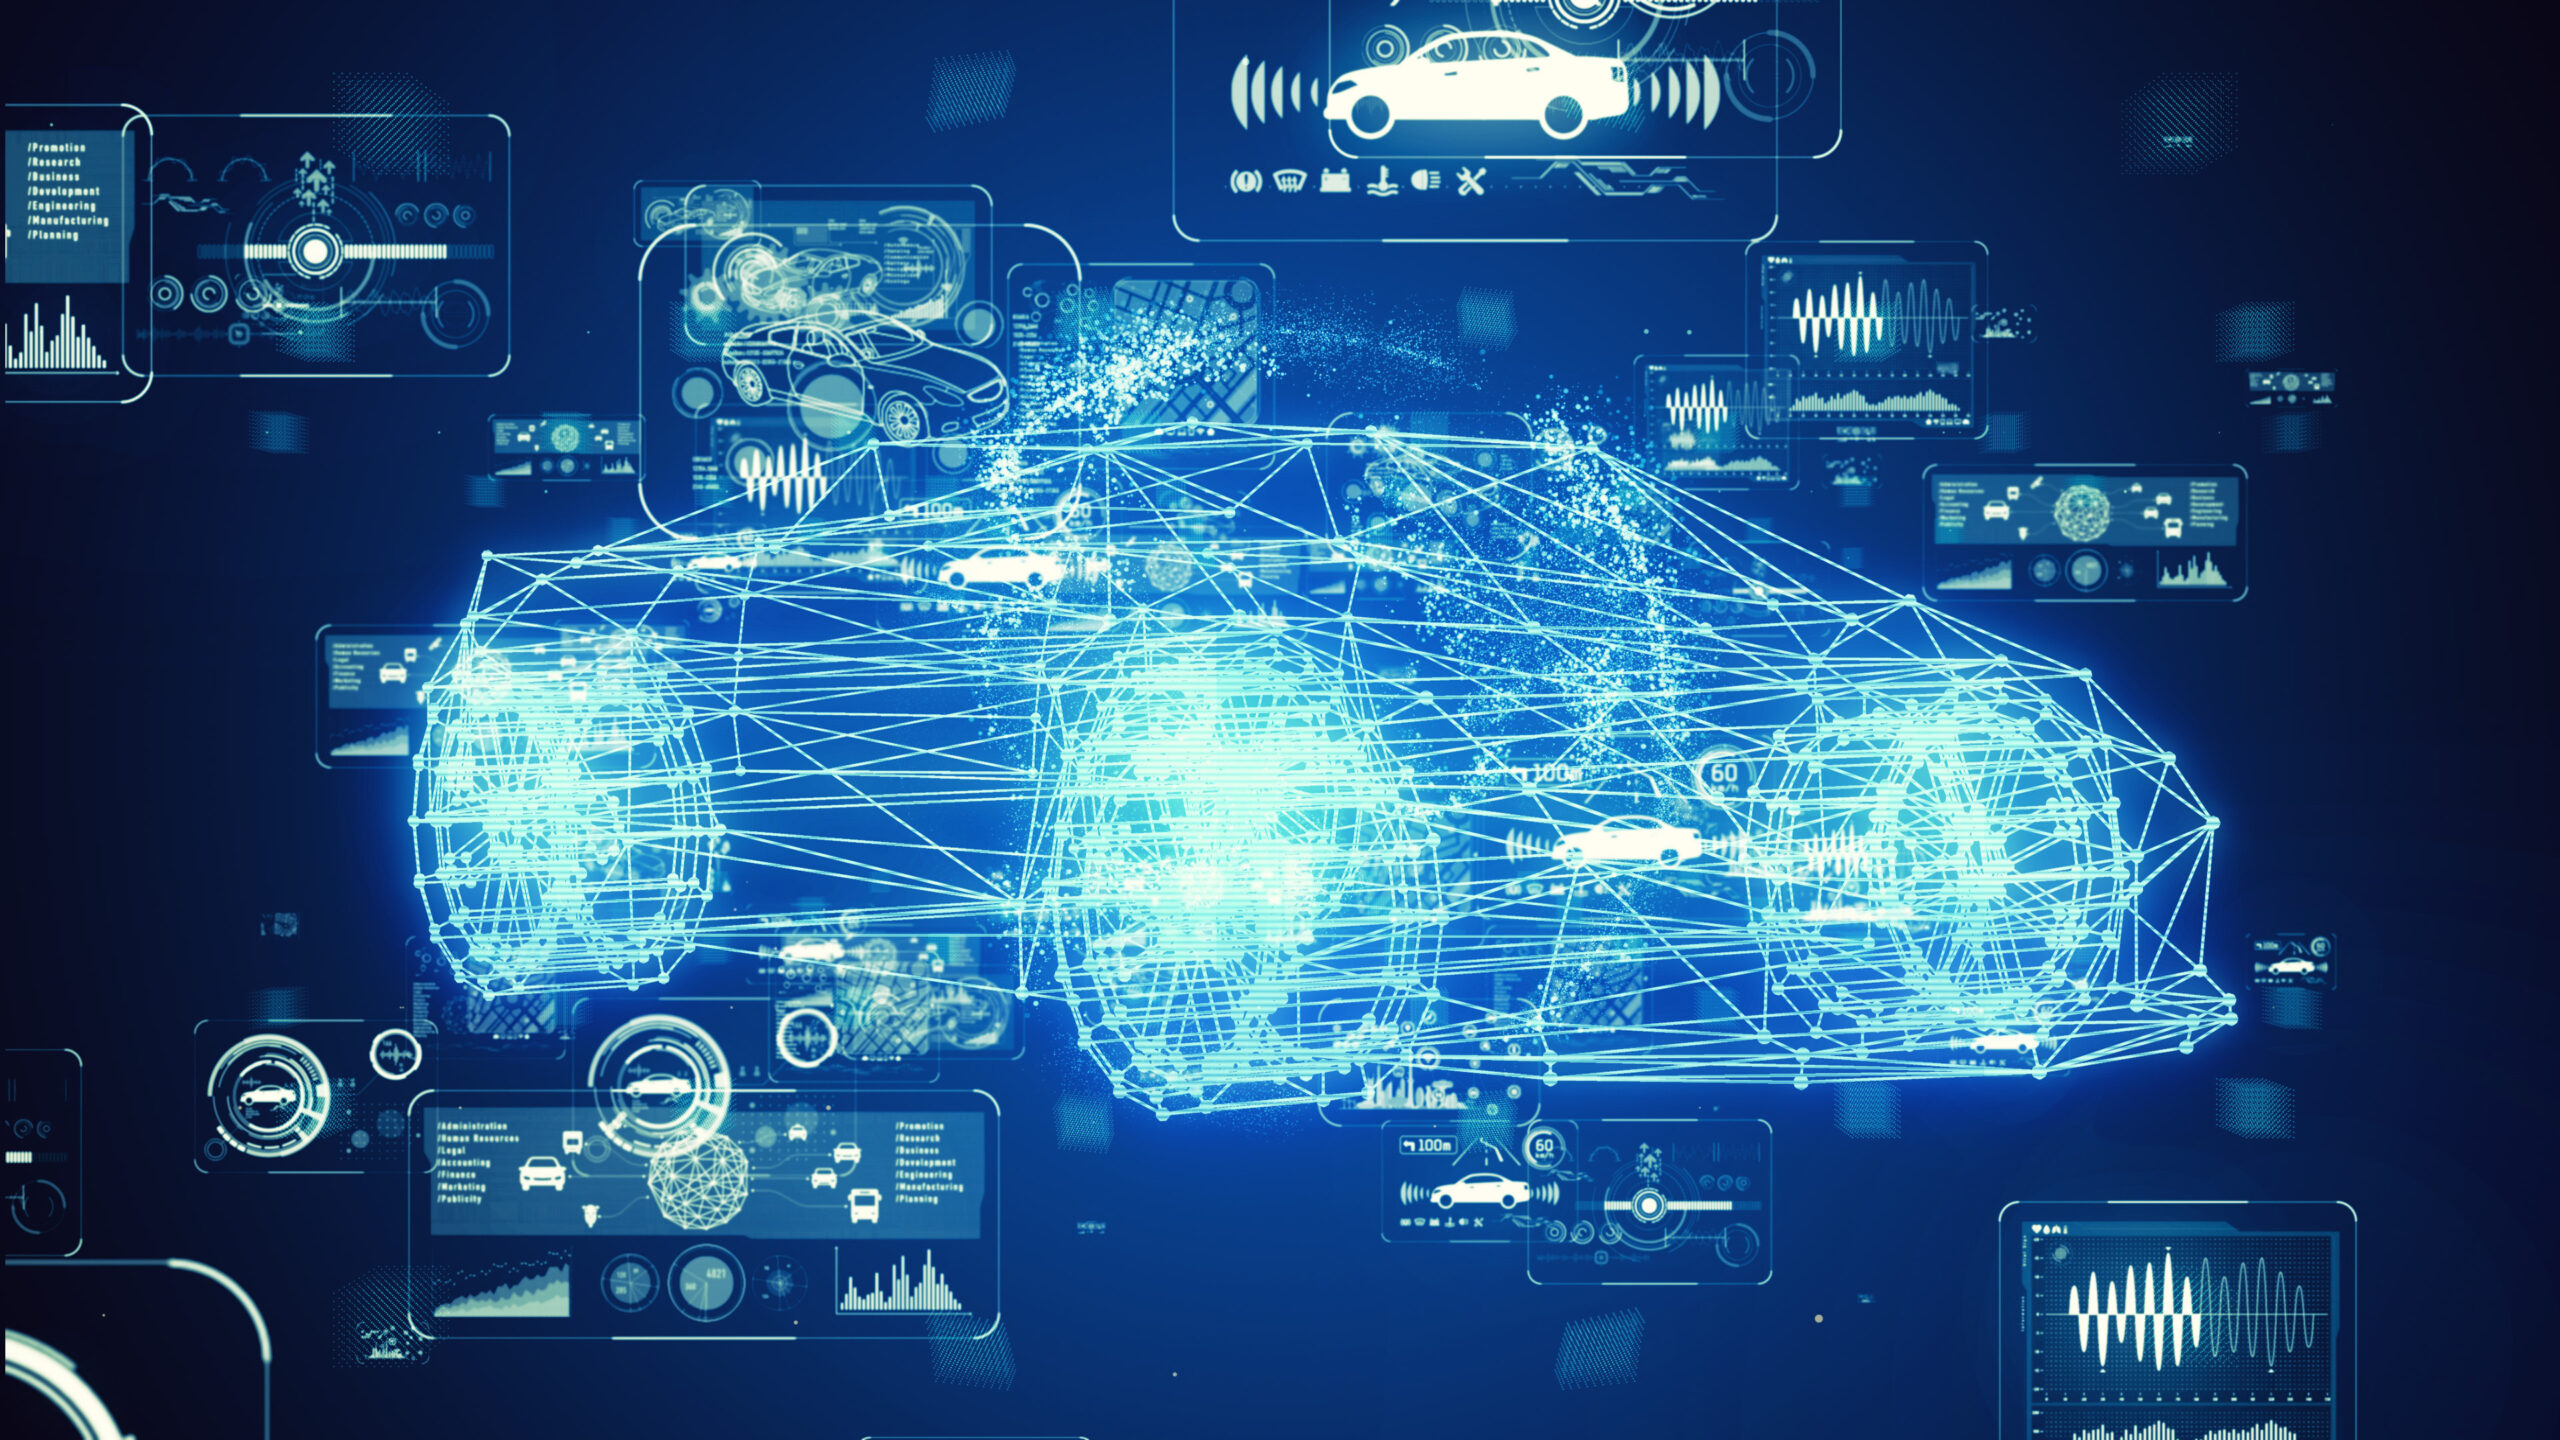 Blue wireframe of an intelligent electric car